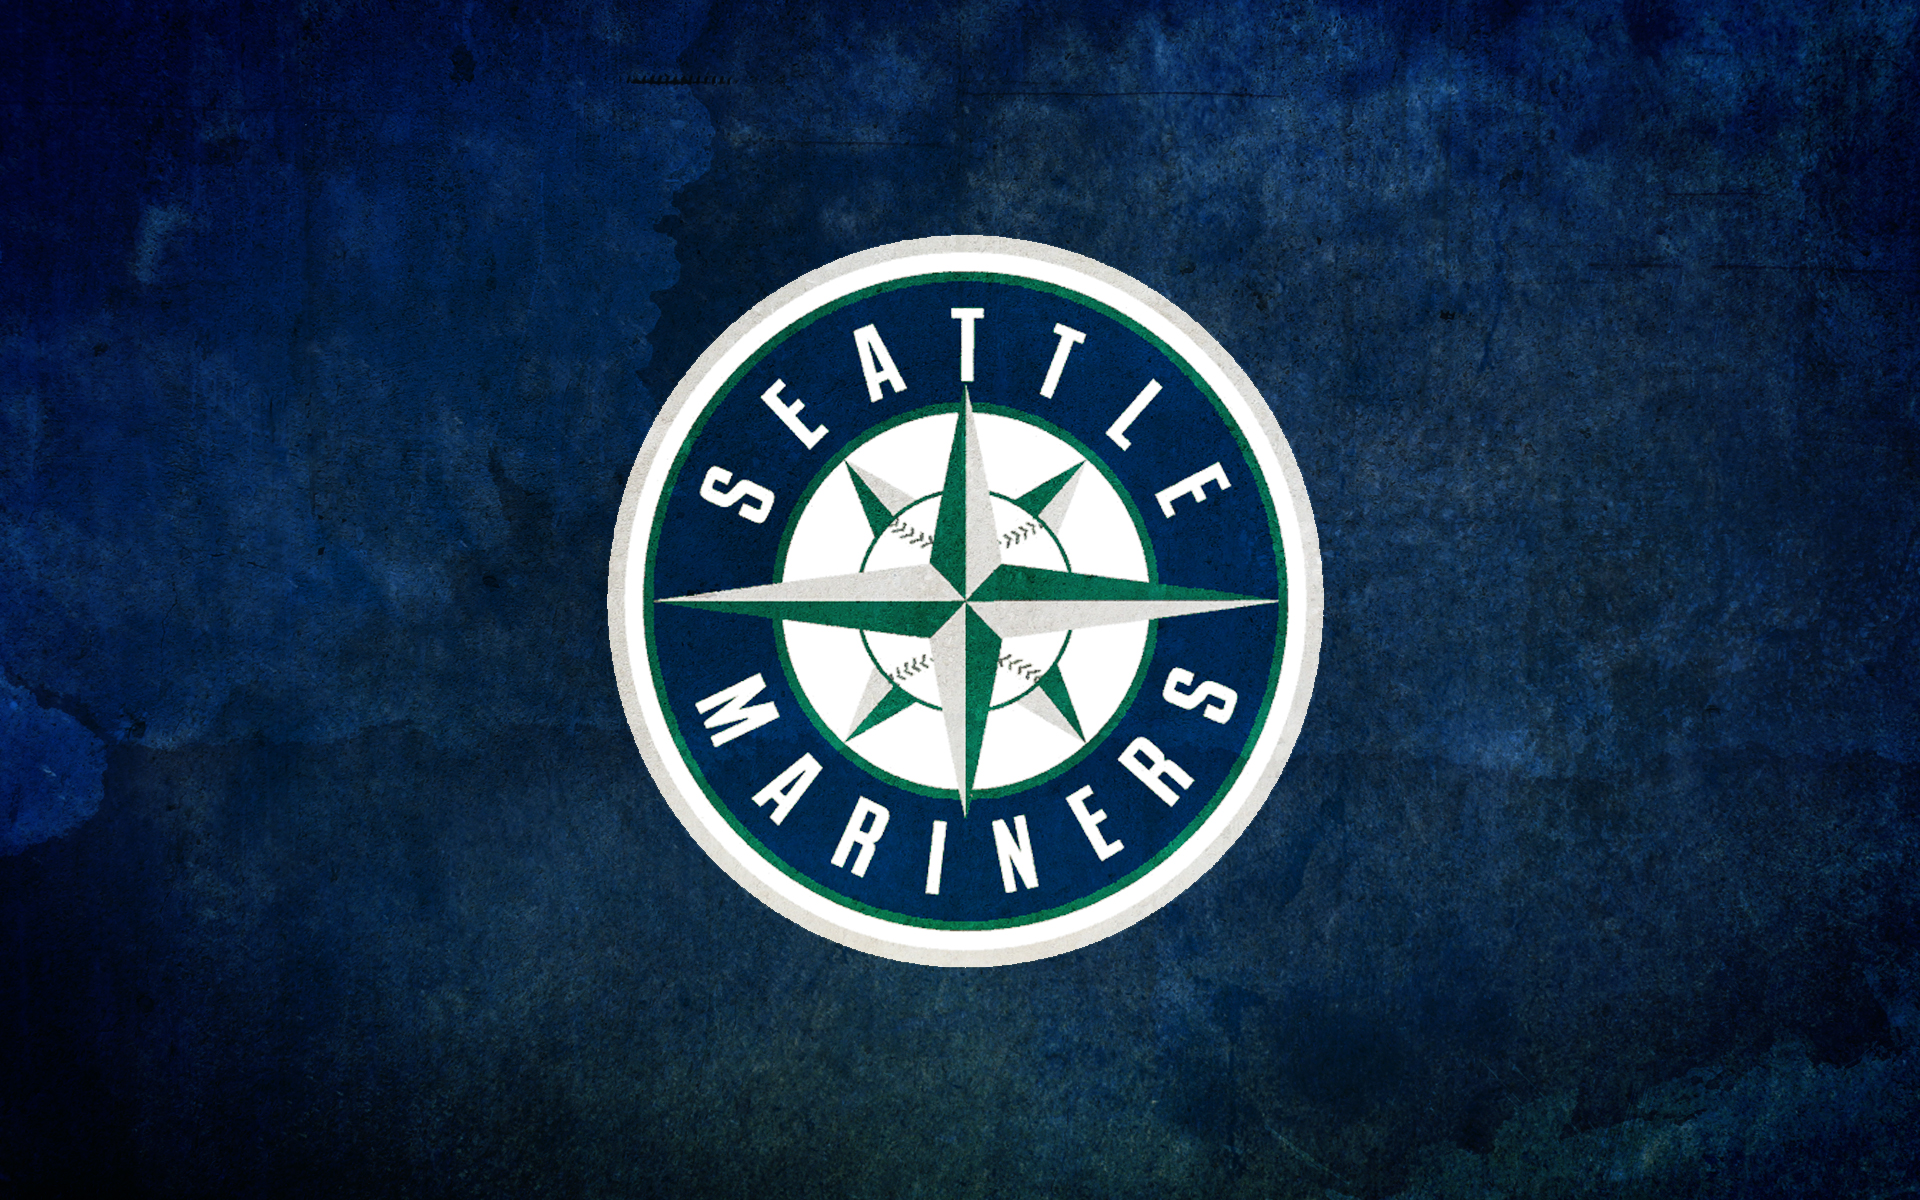 Mariners Logo Wallpaper 1920x1200